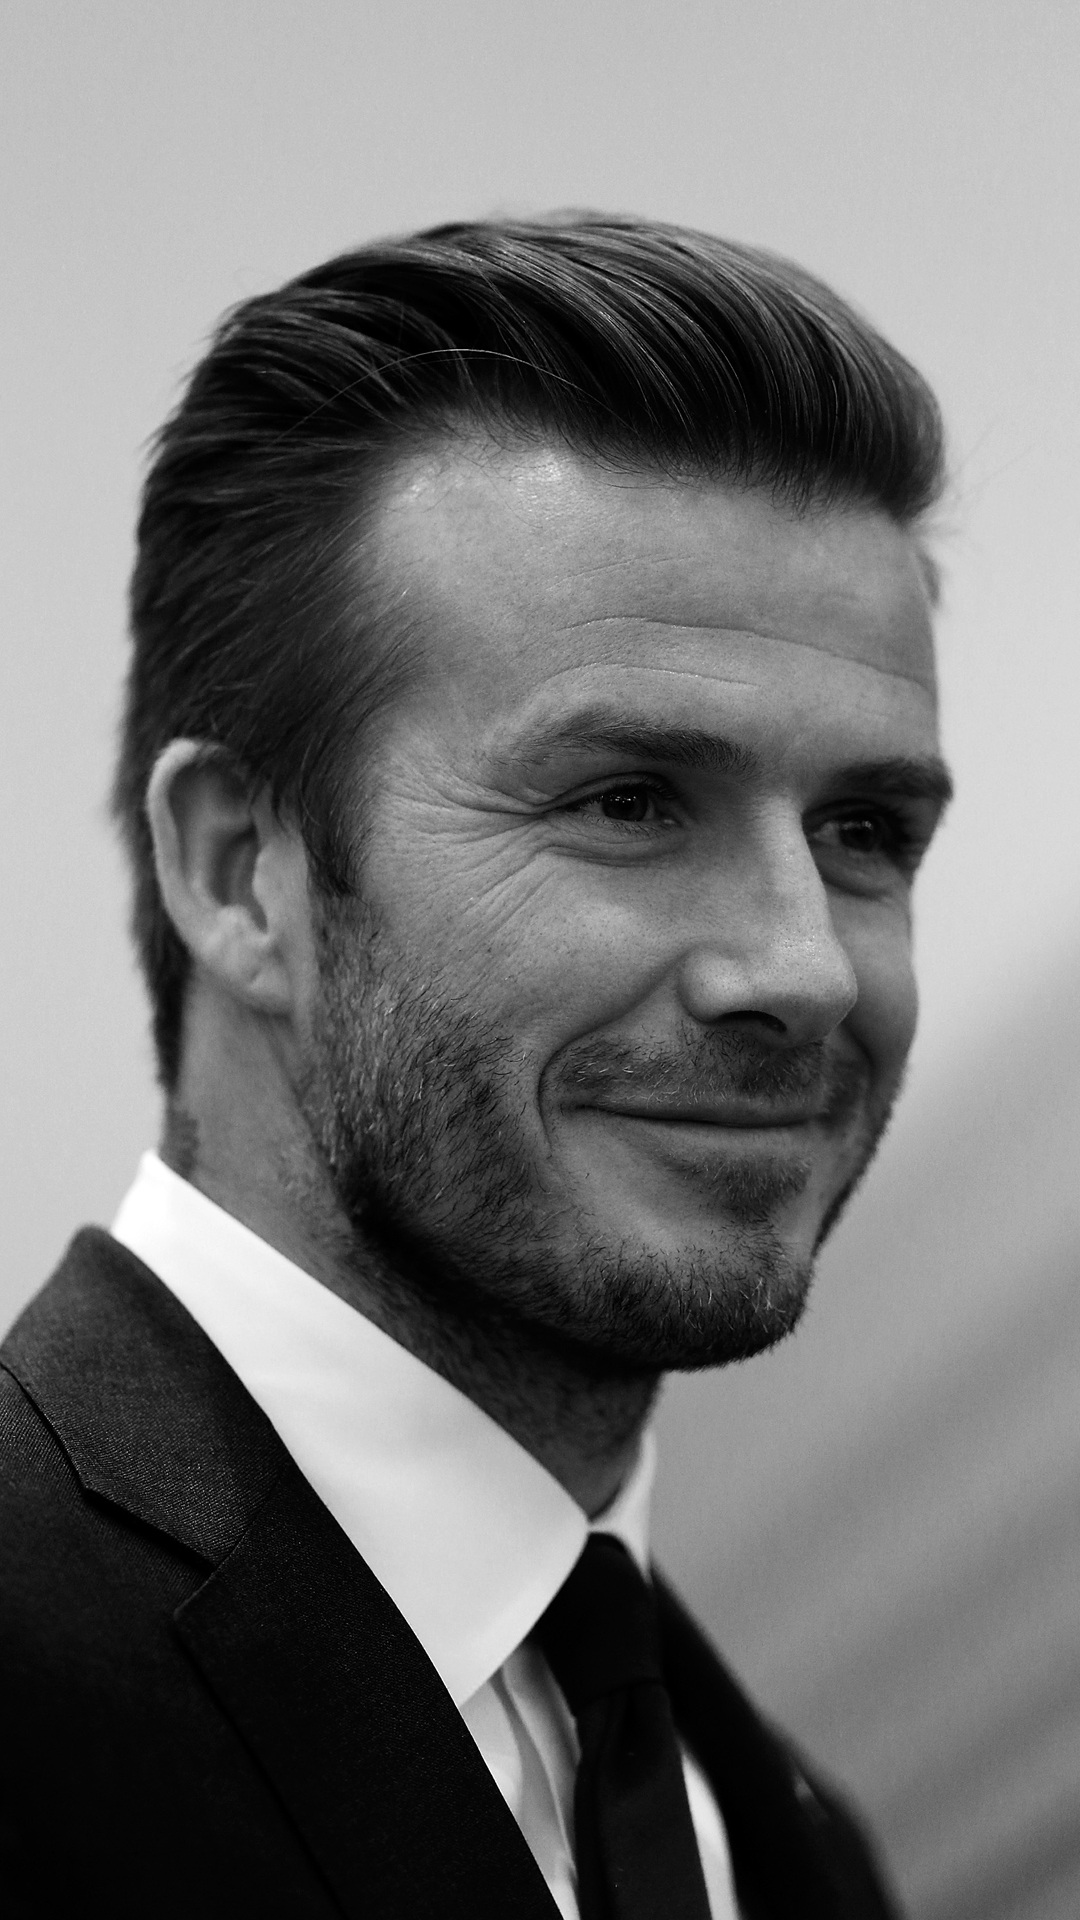 Beckham htc one wallpaper